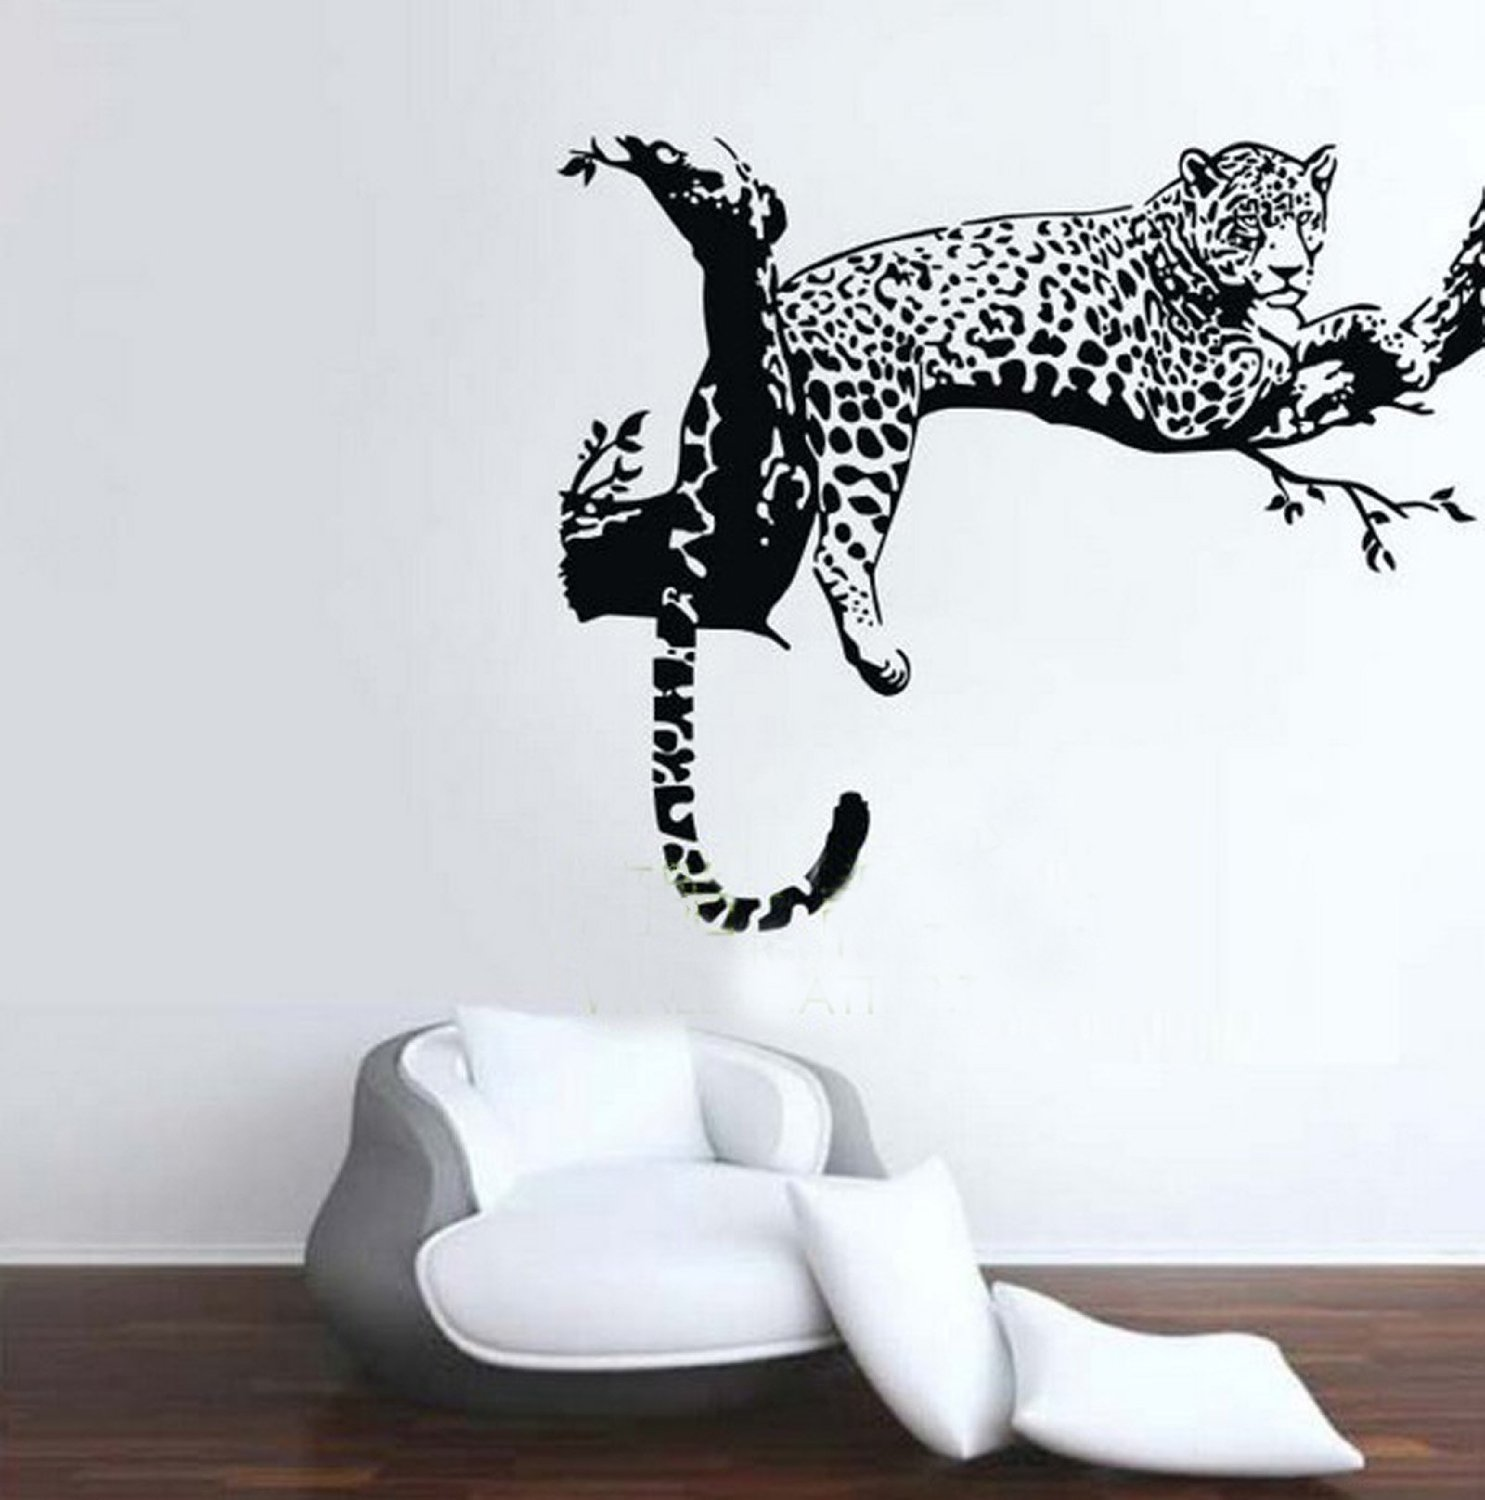 Delicieux Animal Wild Zoo Leopards Cheetahs Tail Wall Decal Sticker Living Room Vinyl  Wall Stickers For Kids Room Home Decor QT004 In Wall Stickers From Home U0026  Garden ...